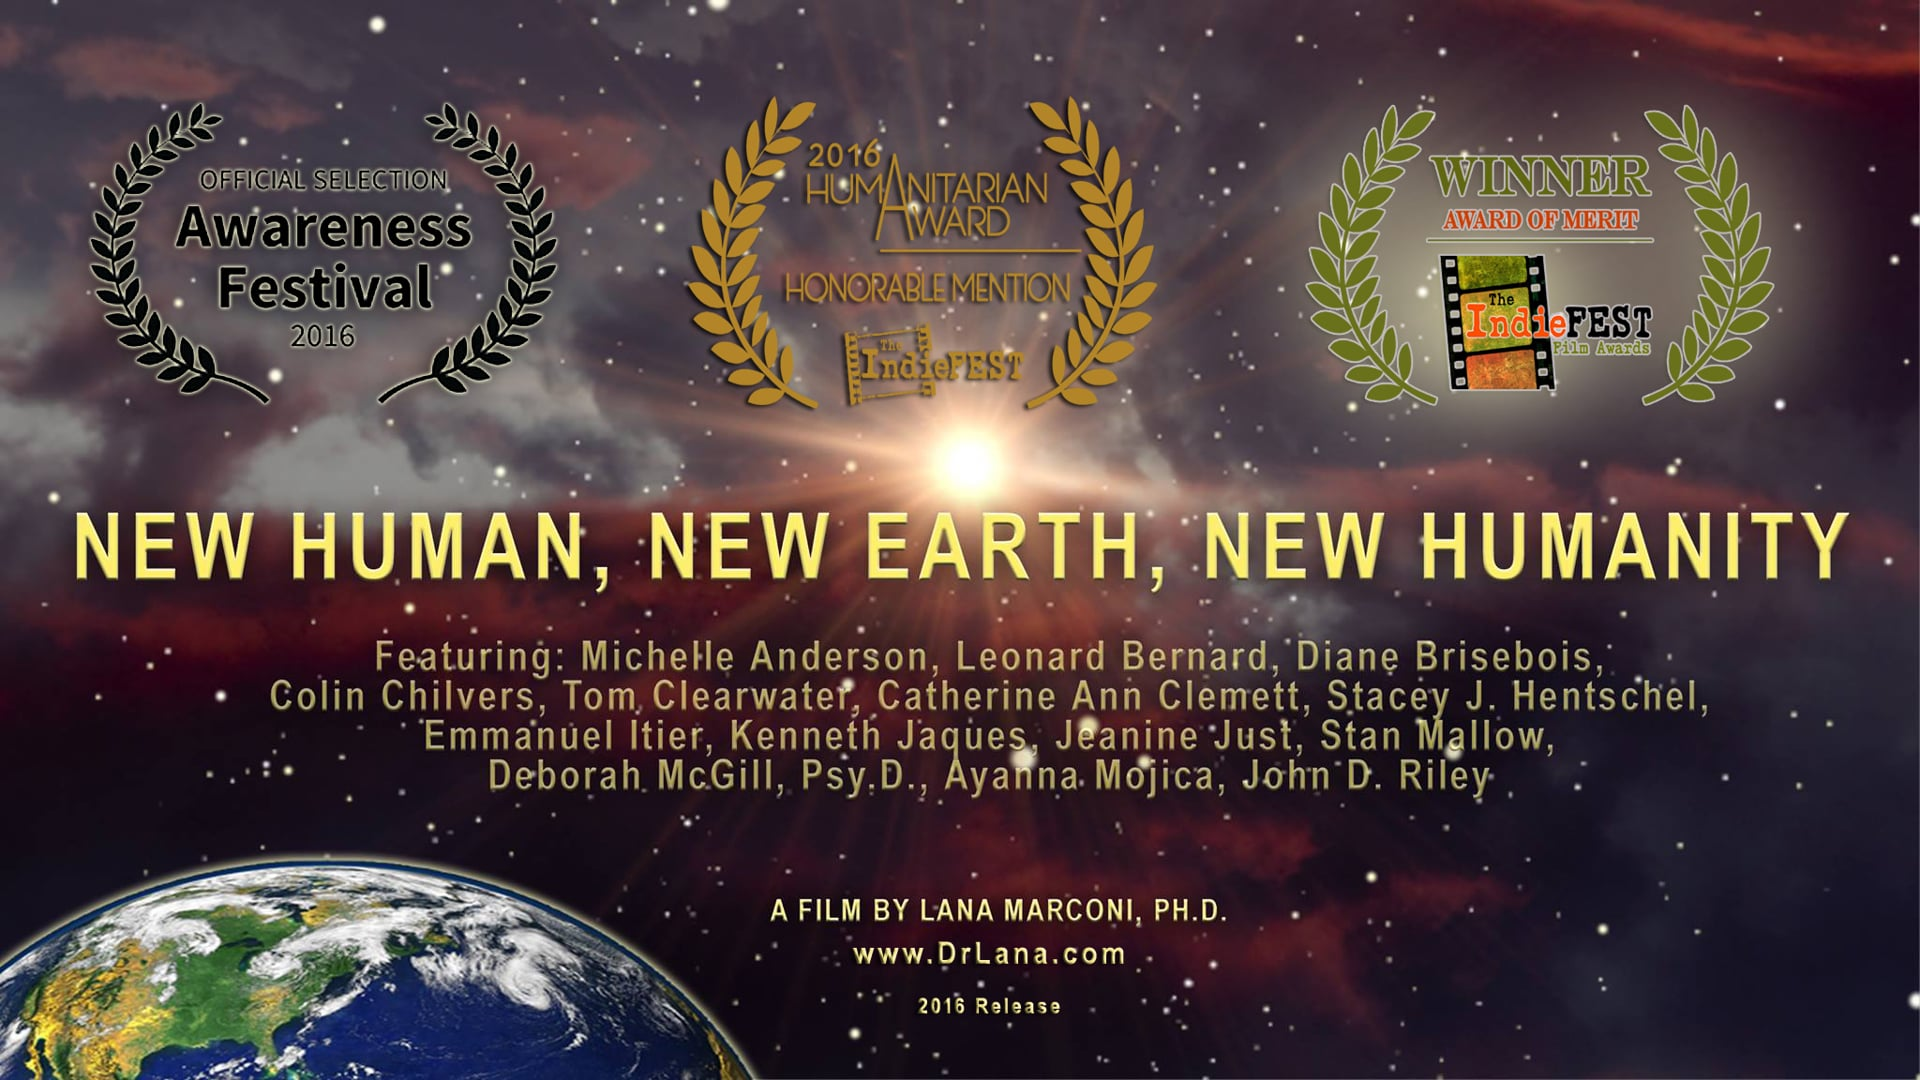 Film Trailer: New Human, New Earth, New Humanity